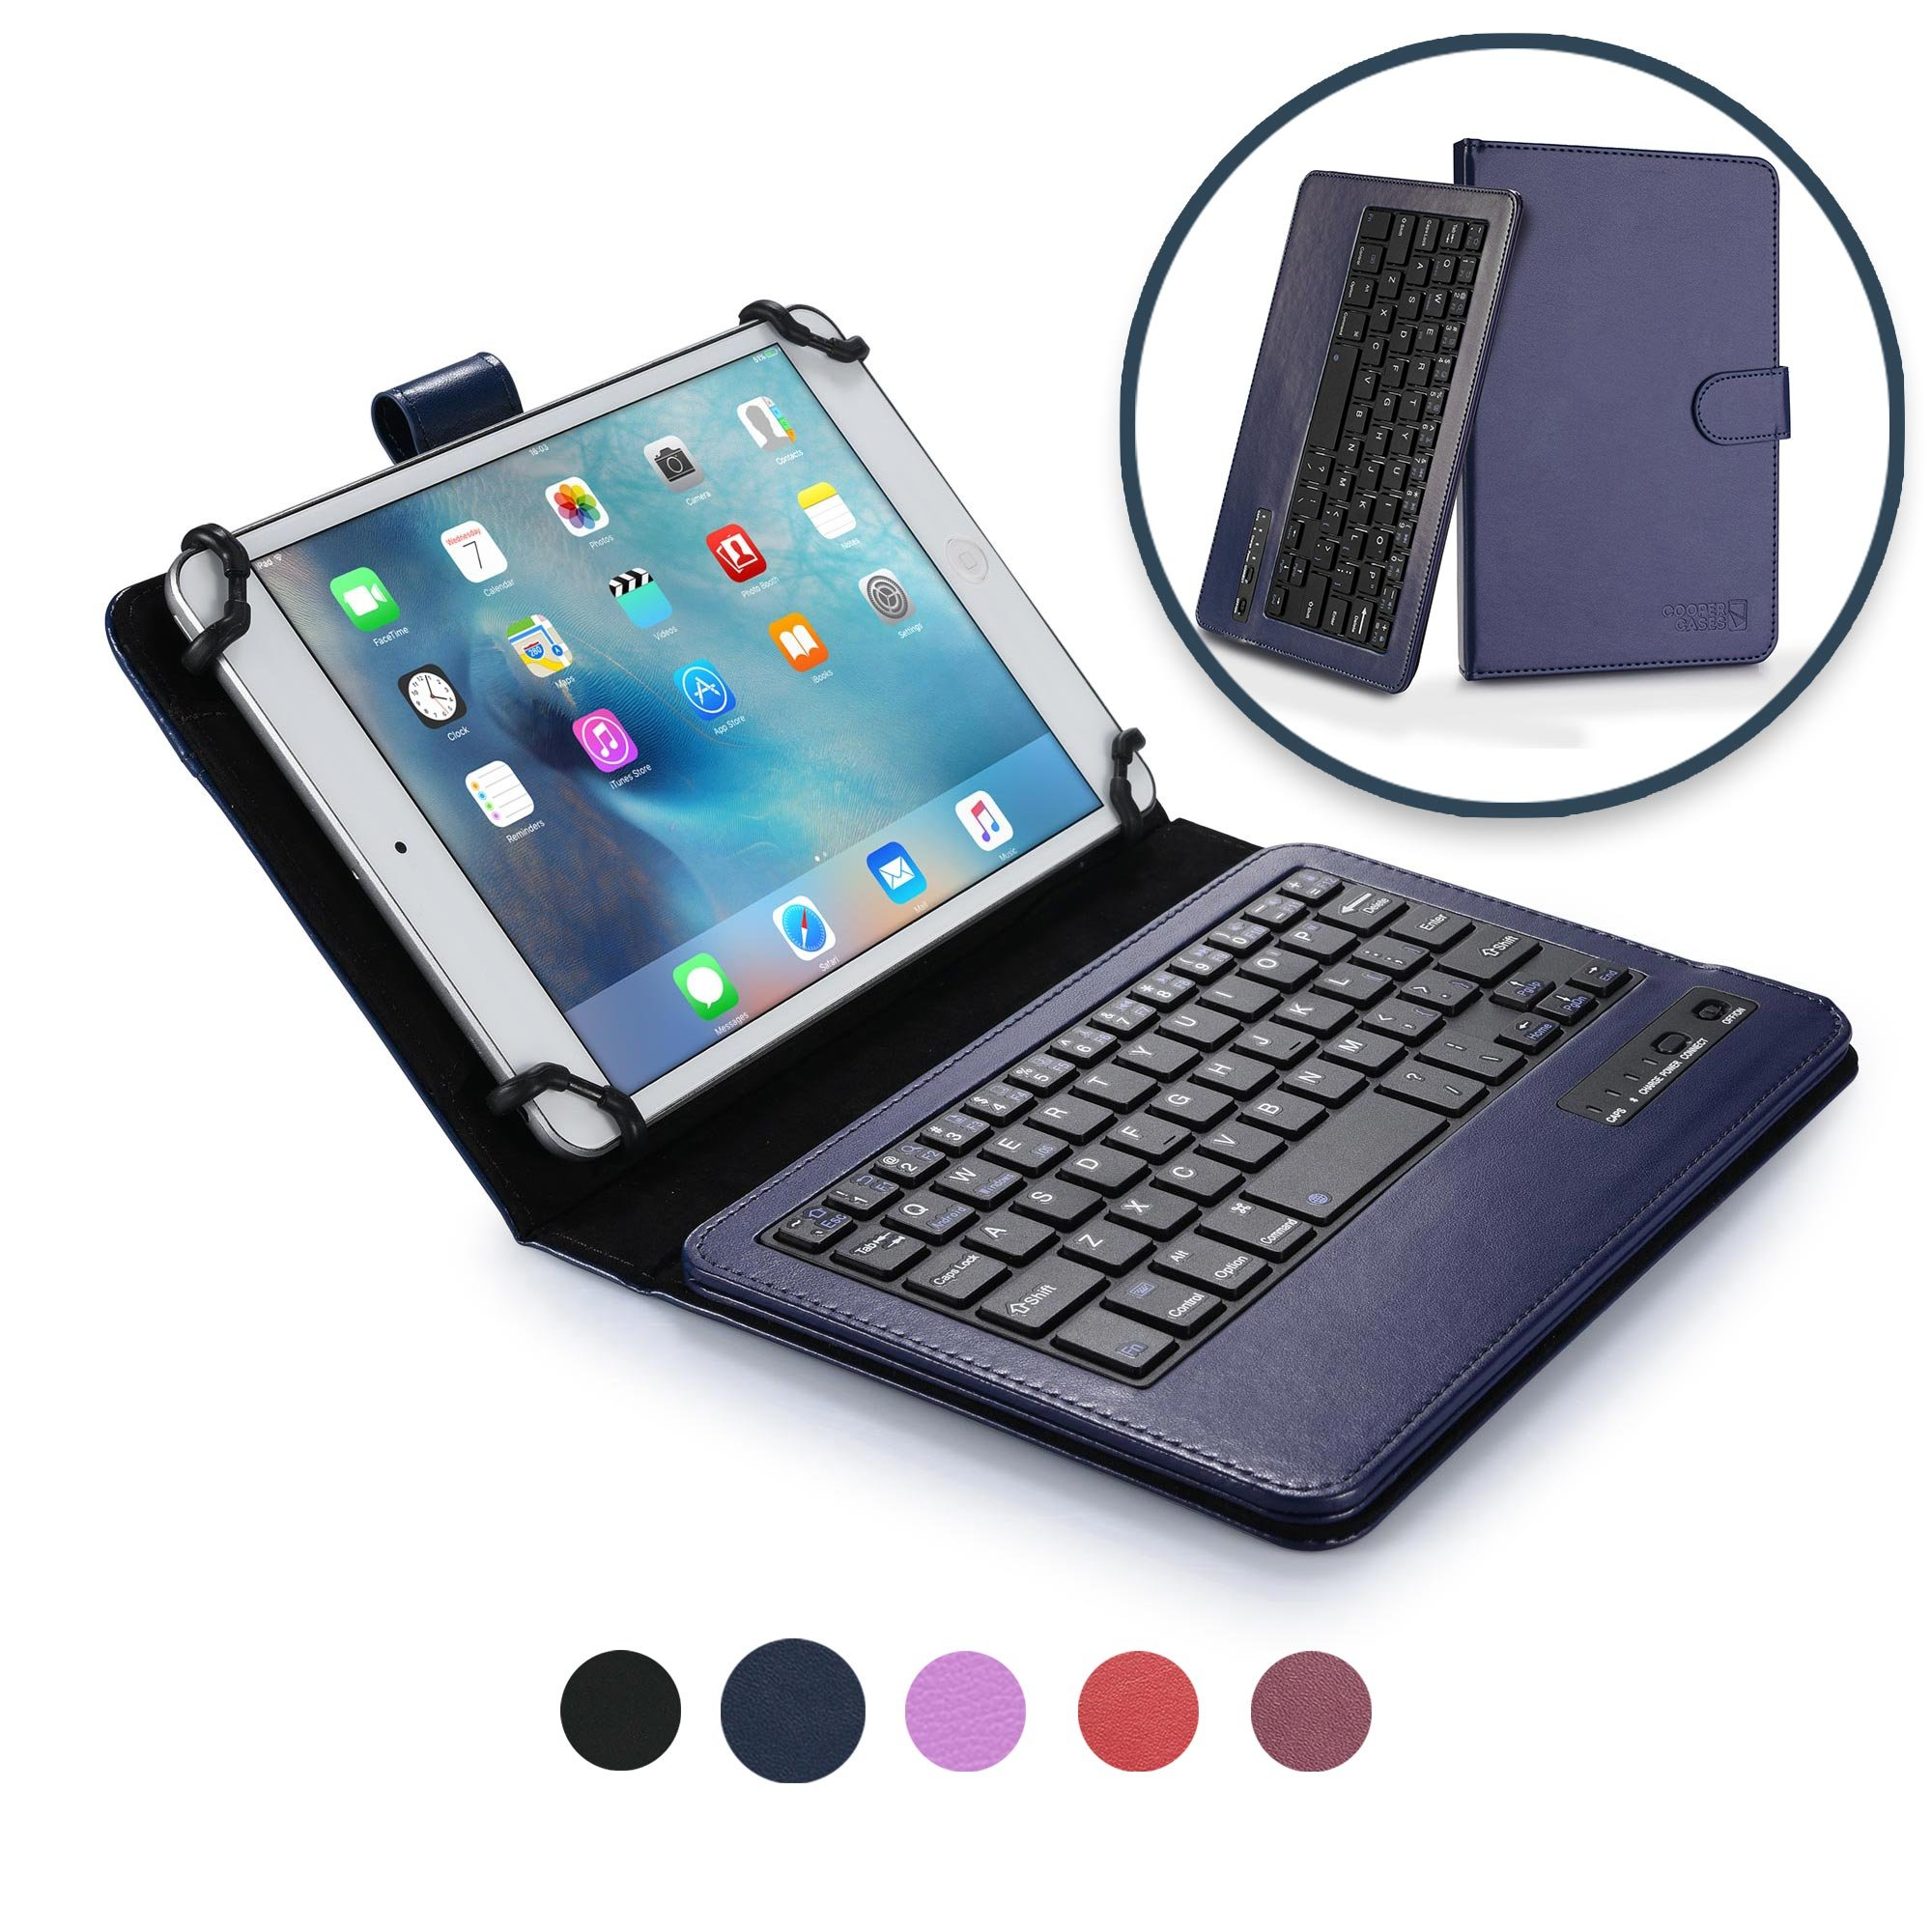 Cooper Infinite Executive Keyboard case for 7'' - 8'' inch Tablets | 2-in-1 Bluetooth Wireless Keyboard & Leather Folio Cover | Universal Fit, Stand, Vegan Leather, 100HR Battery, 14 Hotkeys (Blue)